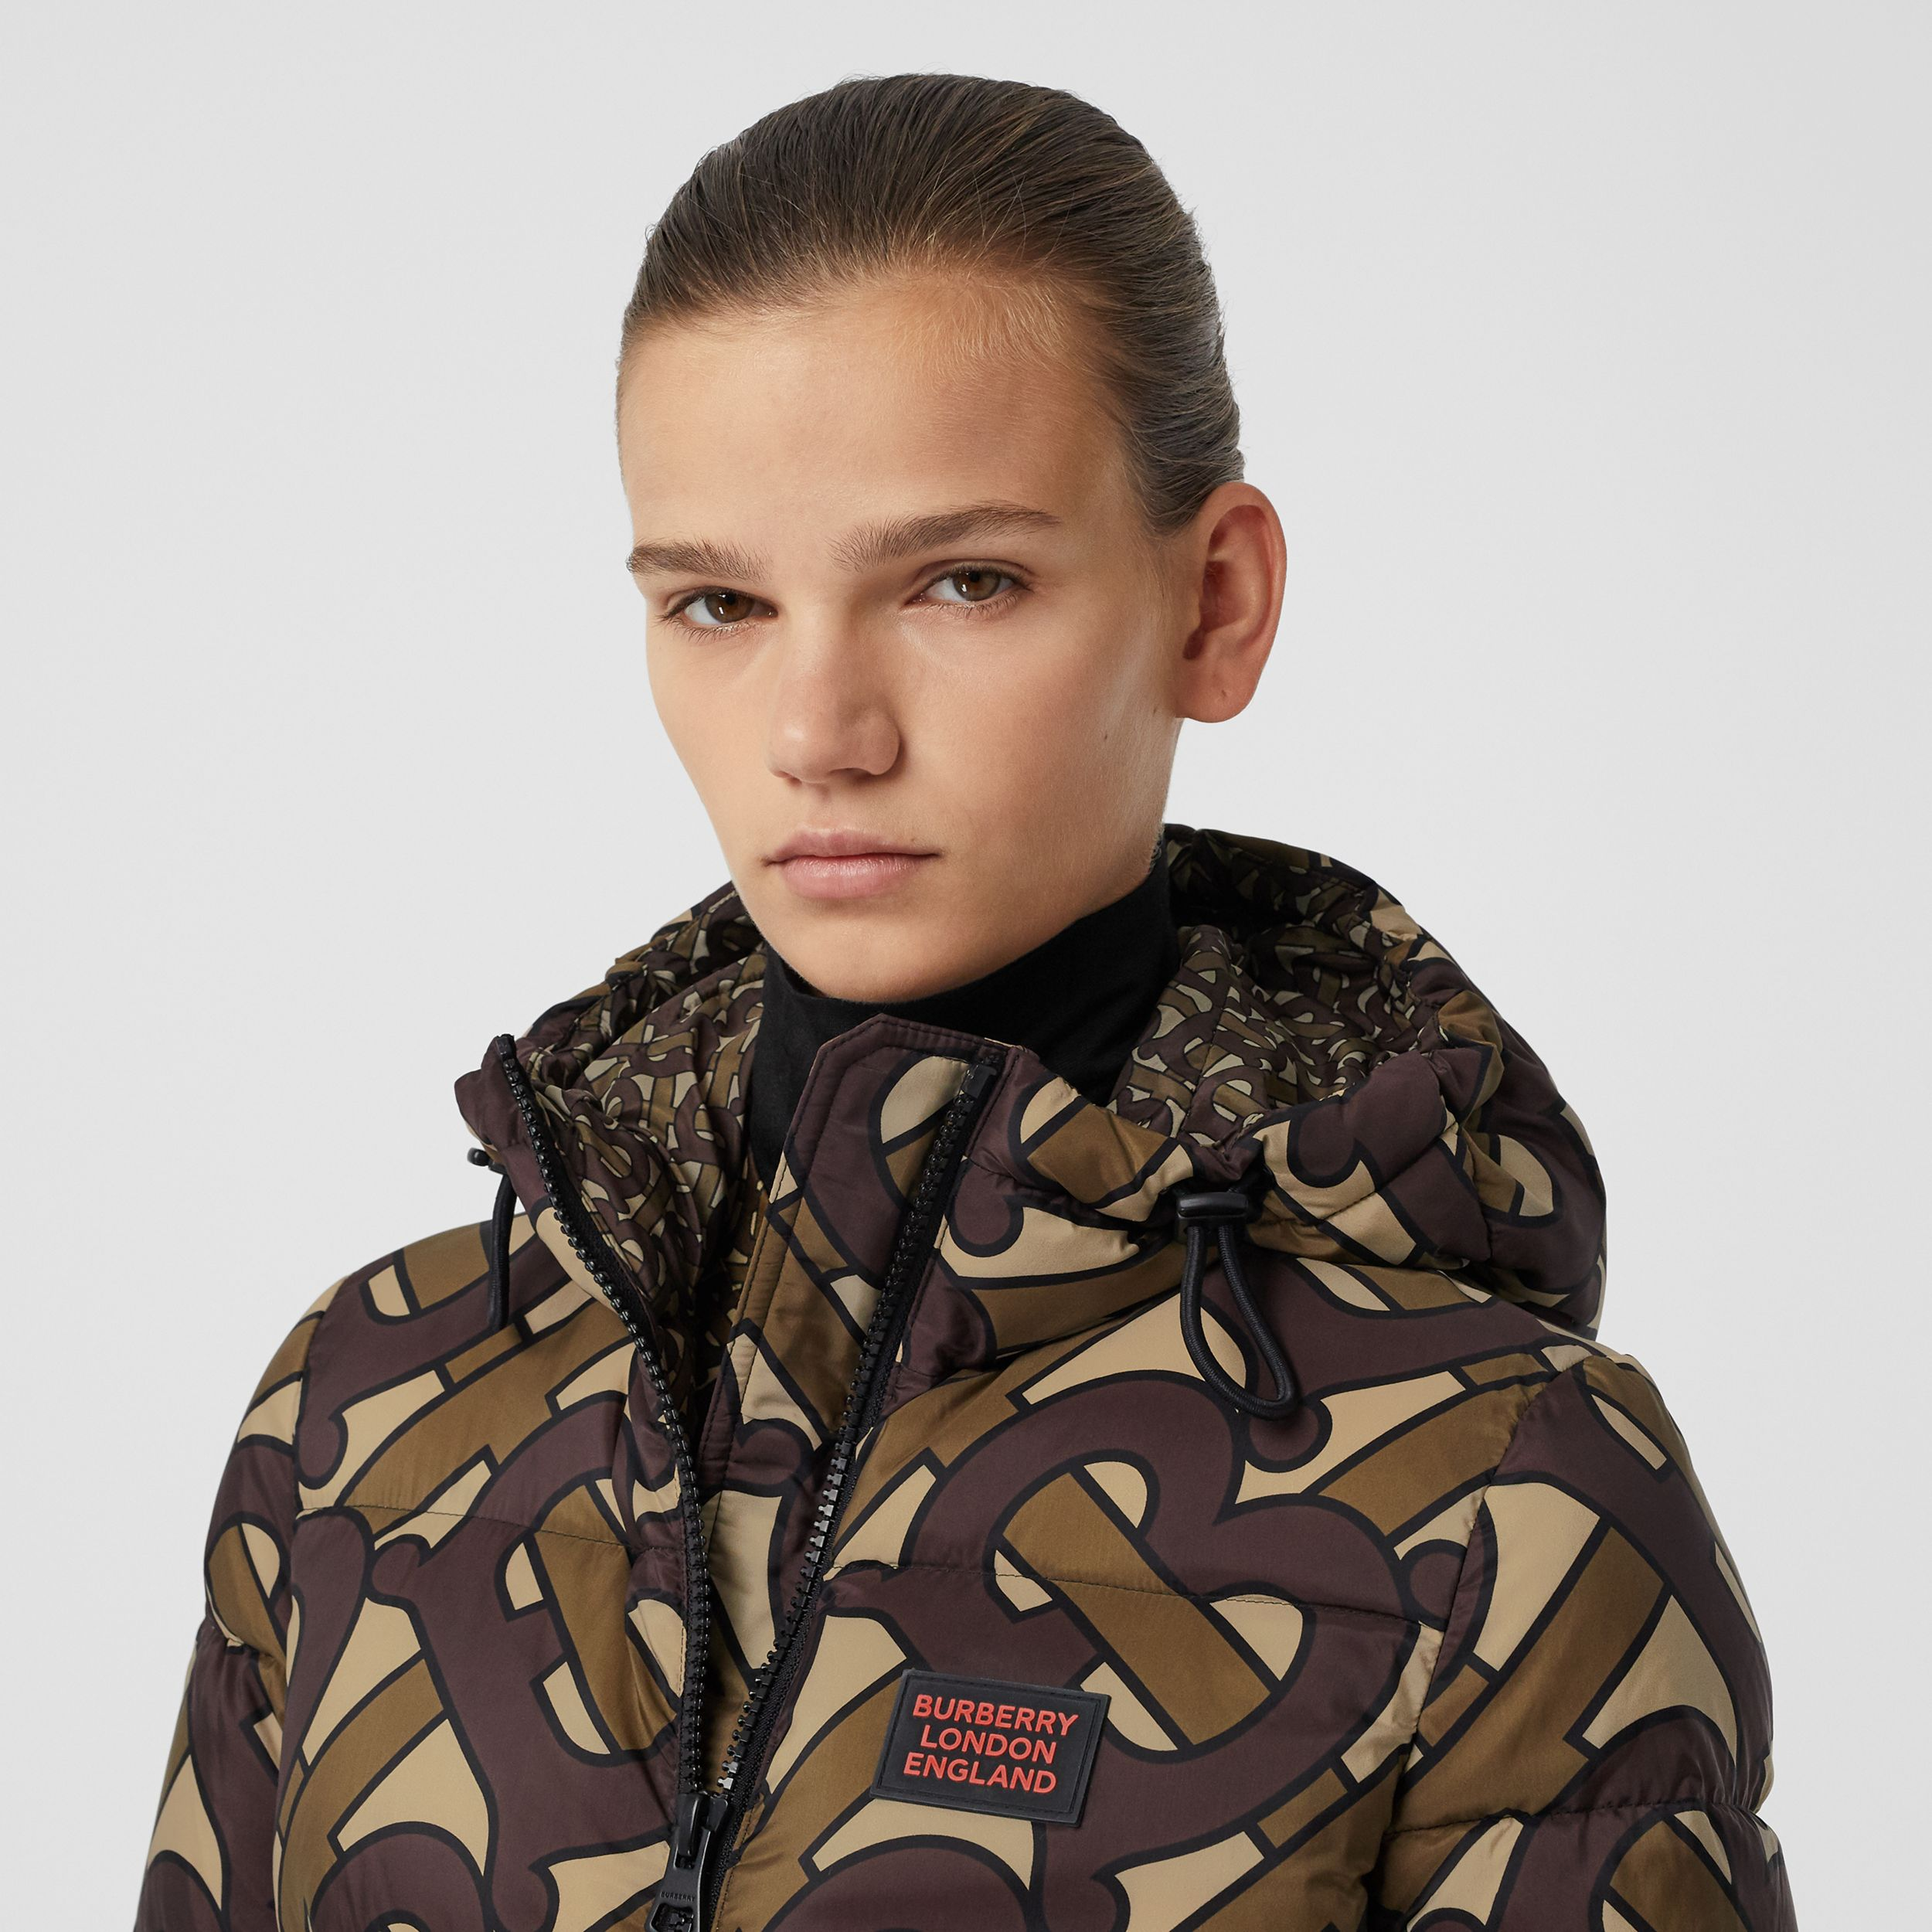 Monogram Print Hooded Puffer Jacket in Bridle Brown - Women | Burberry - 2